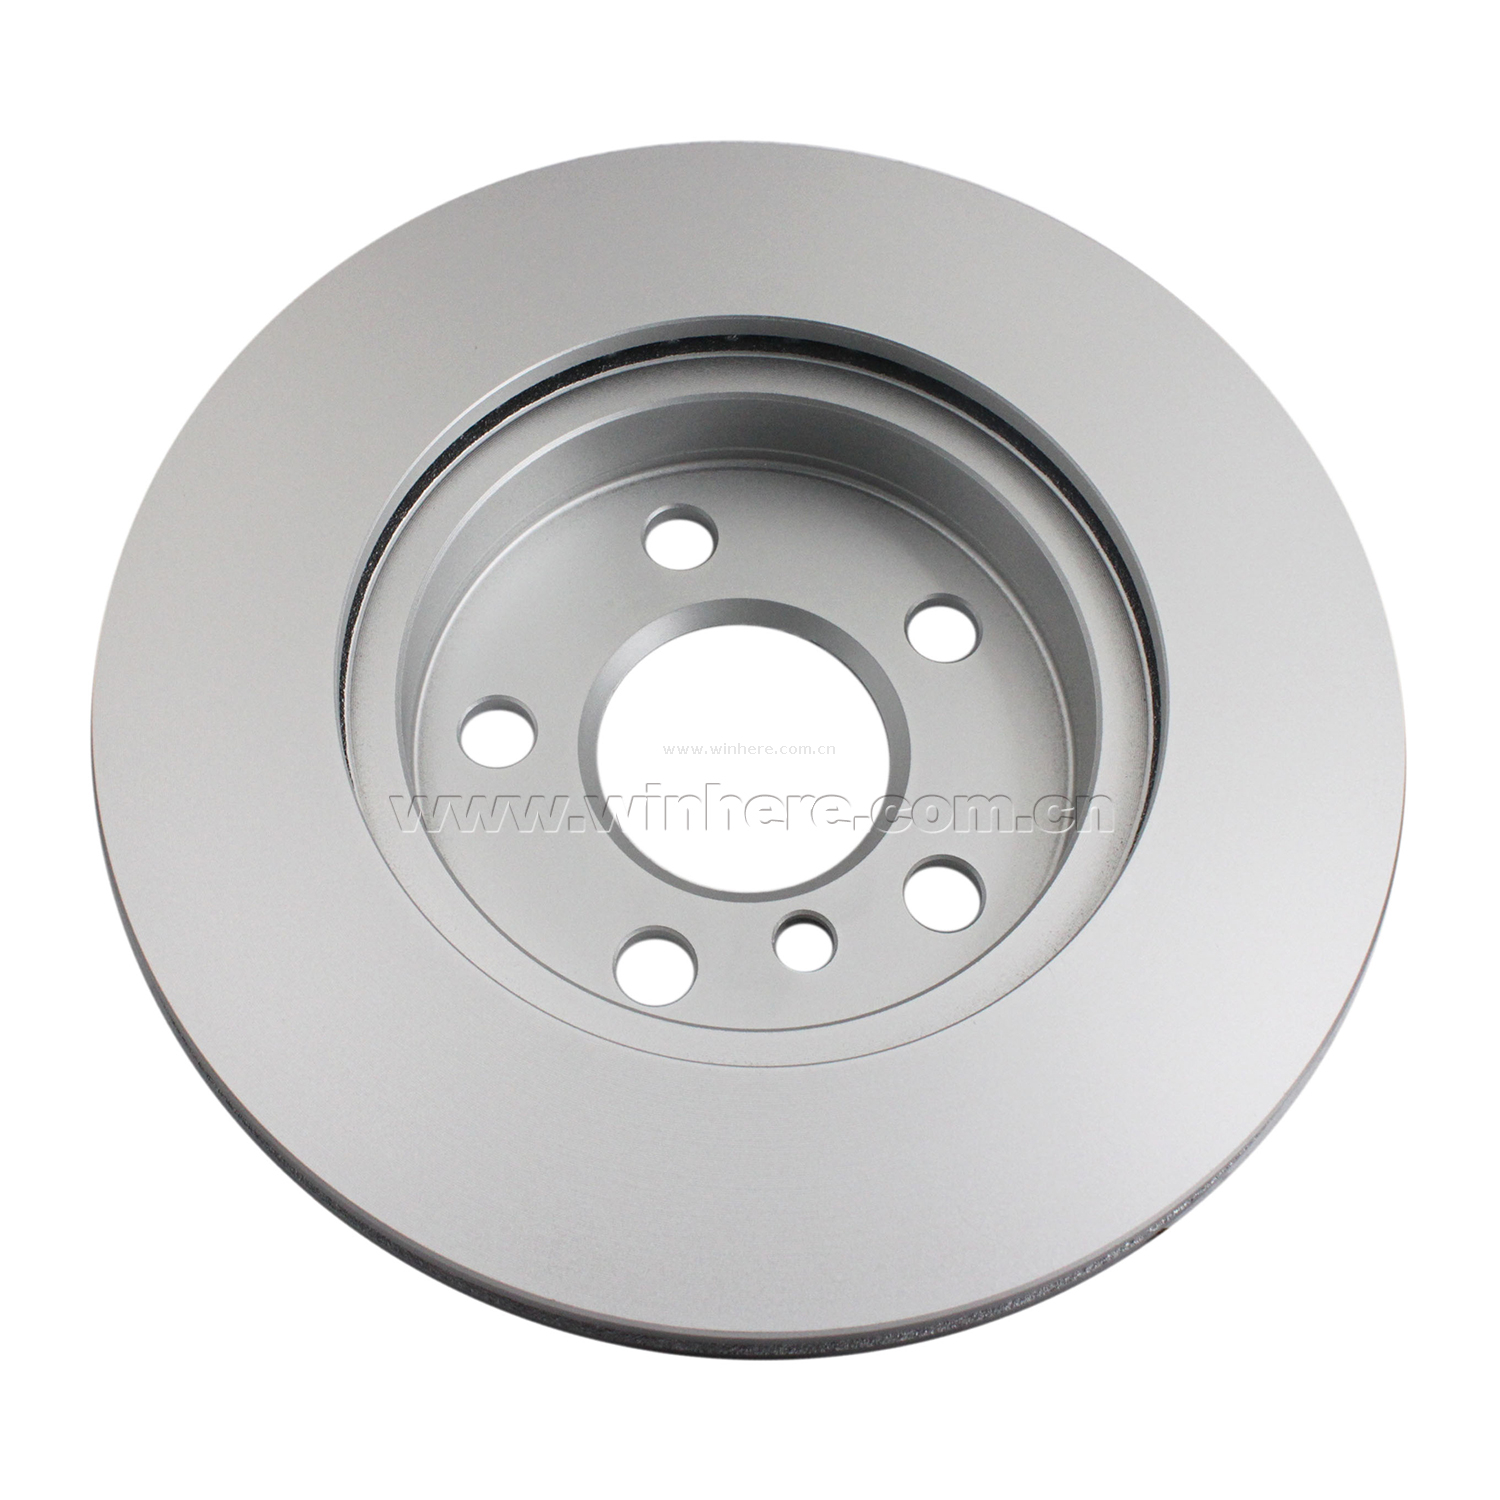 Coated Brake Disc for BMW Front ECE R90